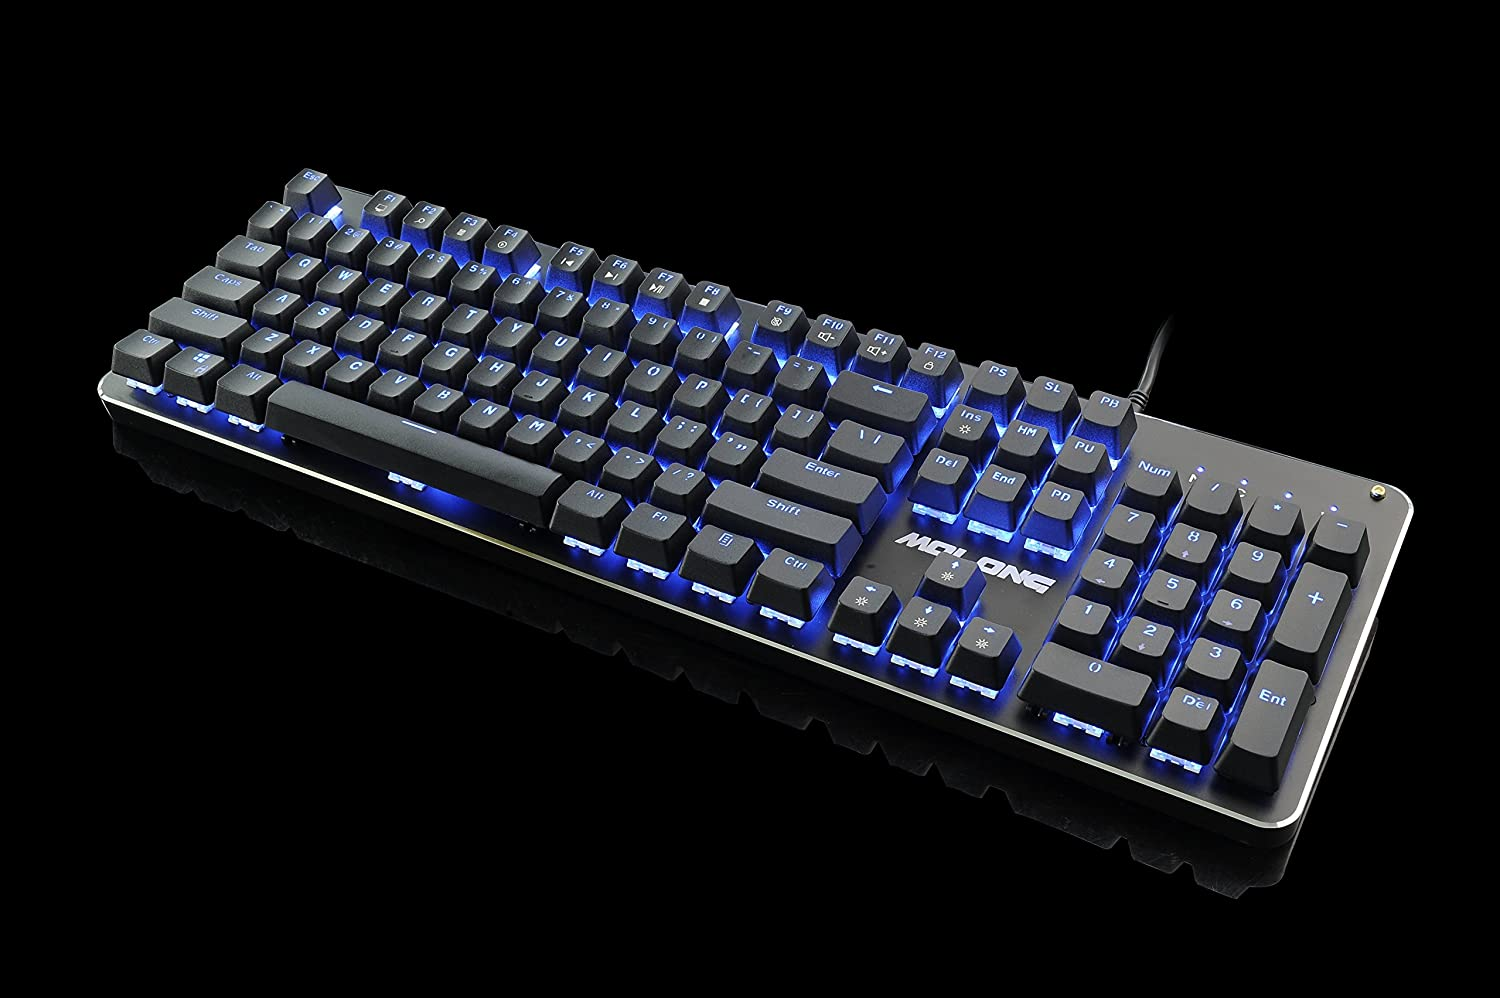 Black RGB Mechanical Gaming Keyboard with Programmable LED Backlit 104 Keys Anti-Ghost Keys DIY Blue Switches for Mac PC